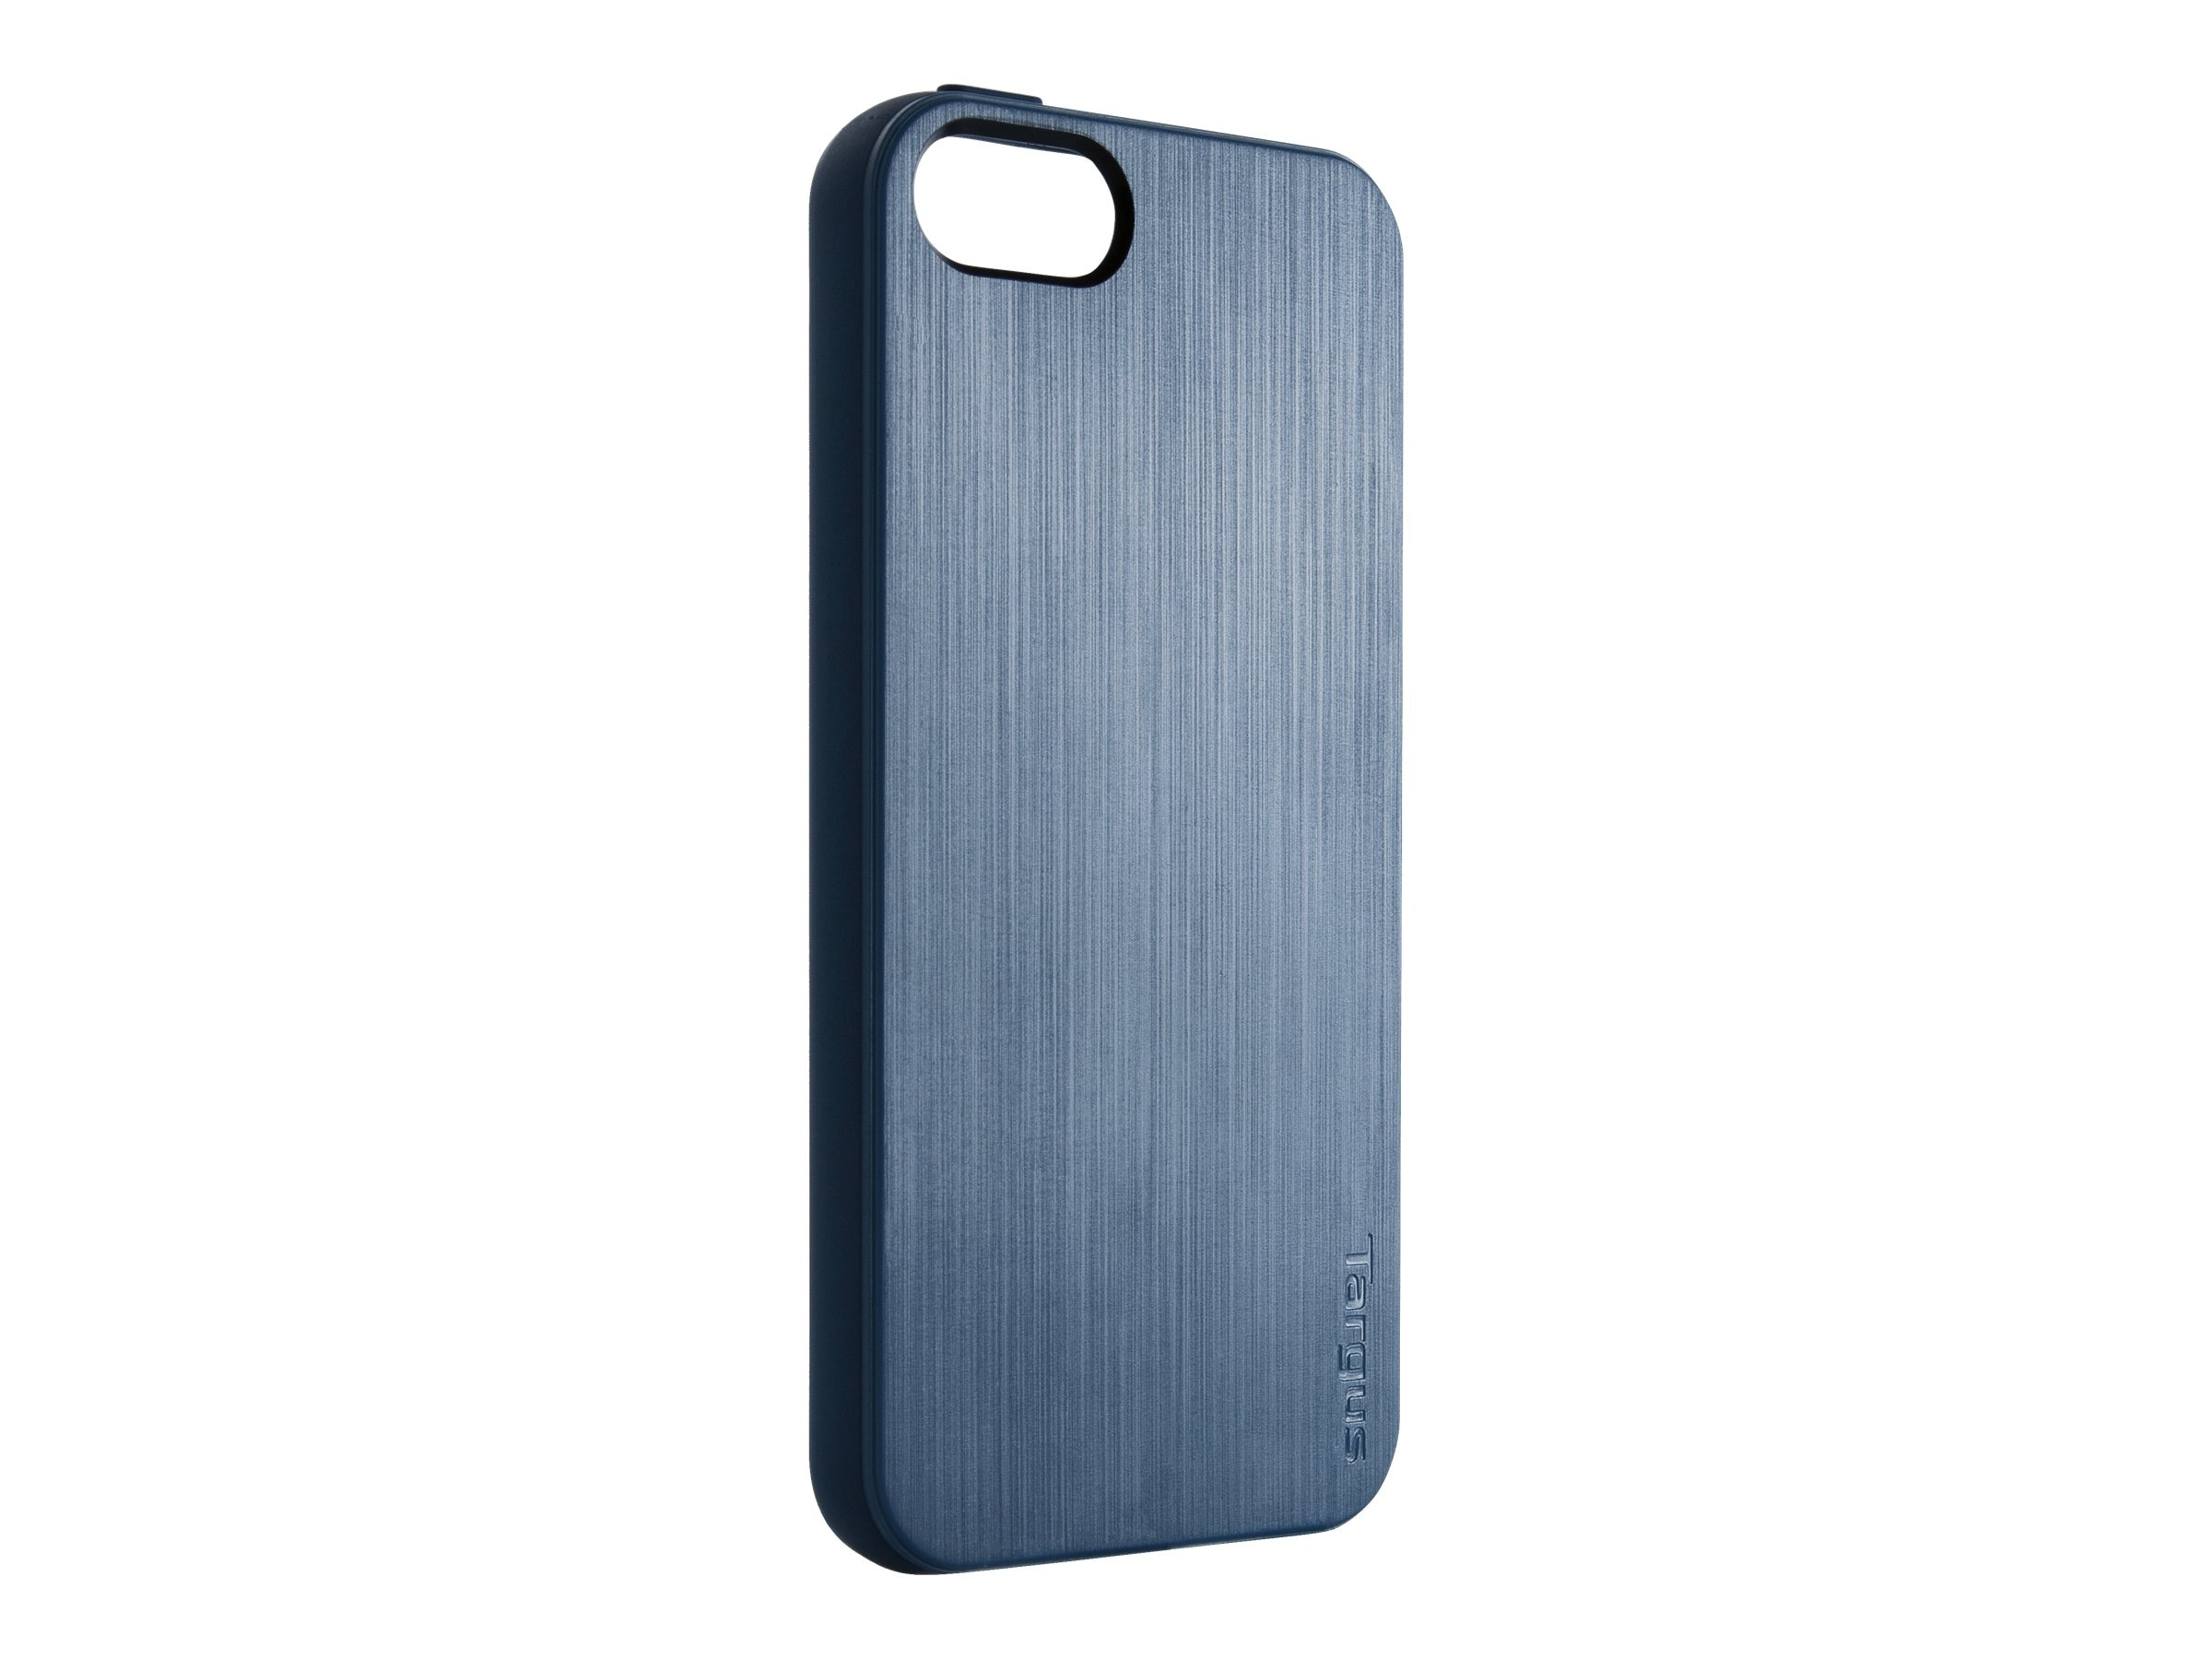 Targus Slim-Fit Back Cover for iPhone 5, Blue, THD03102US